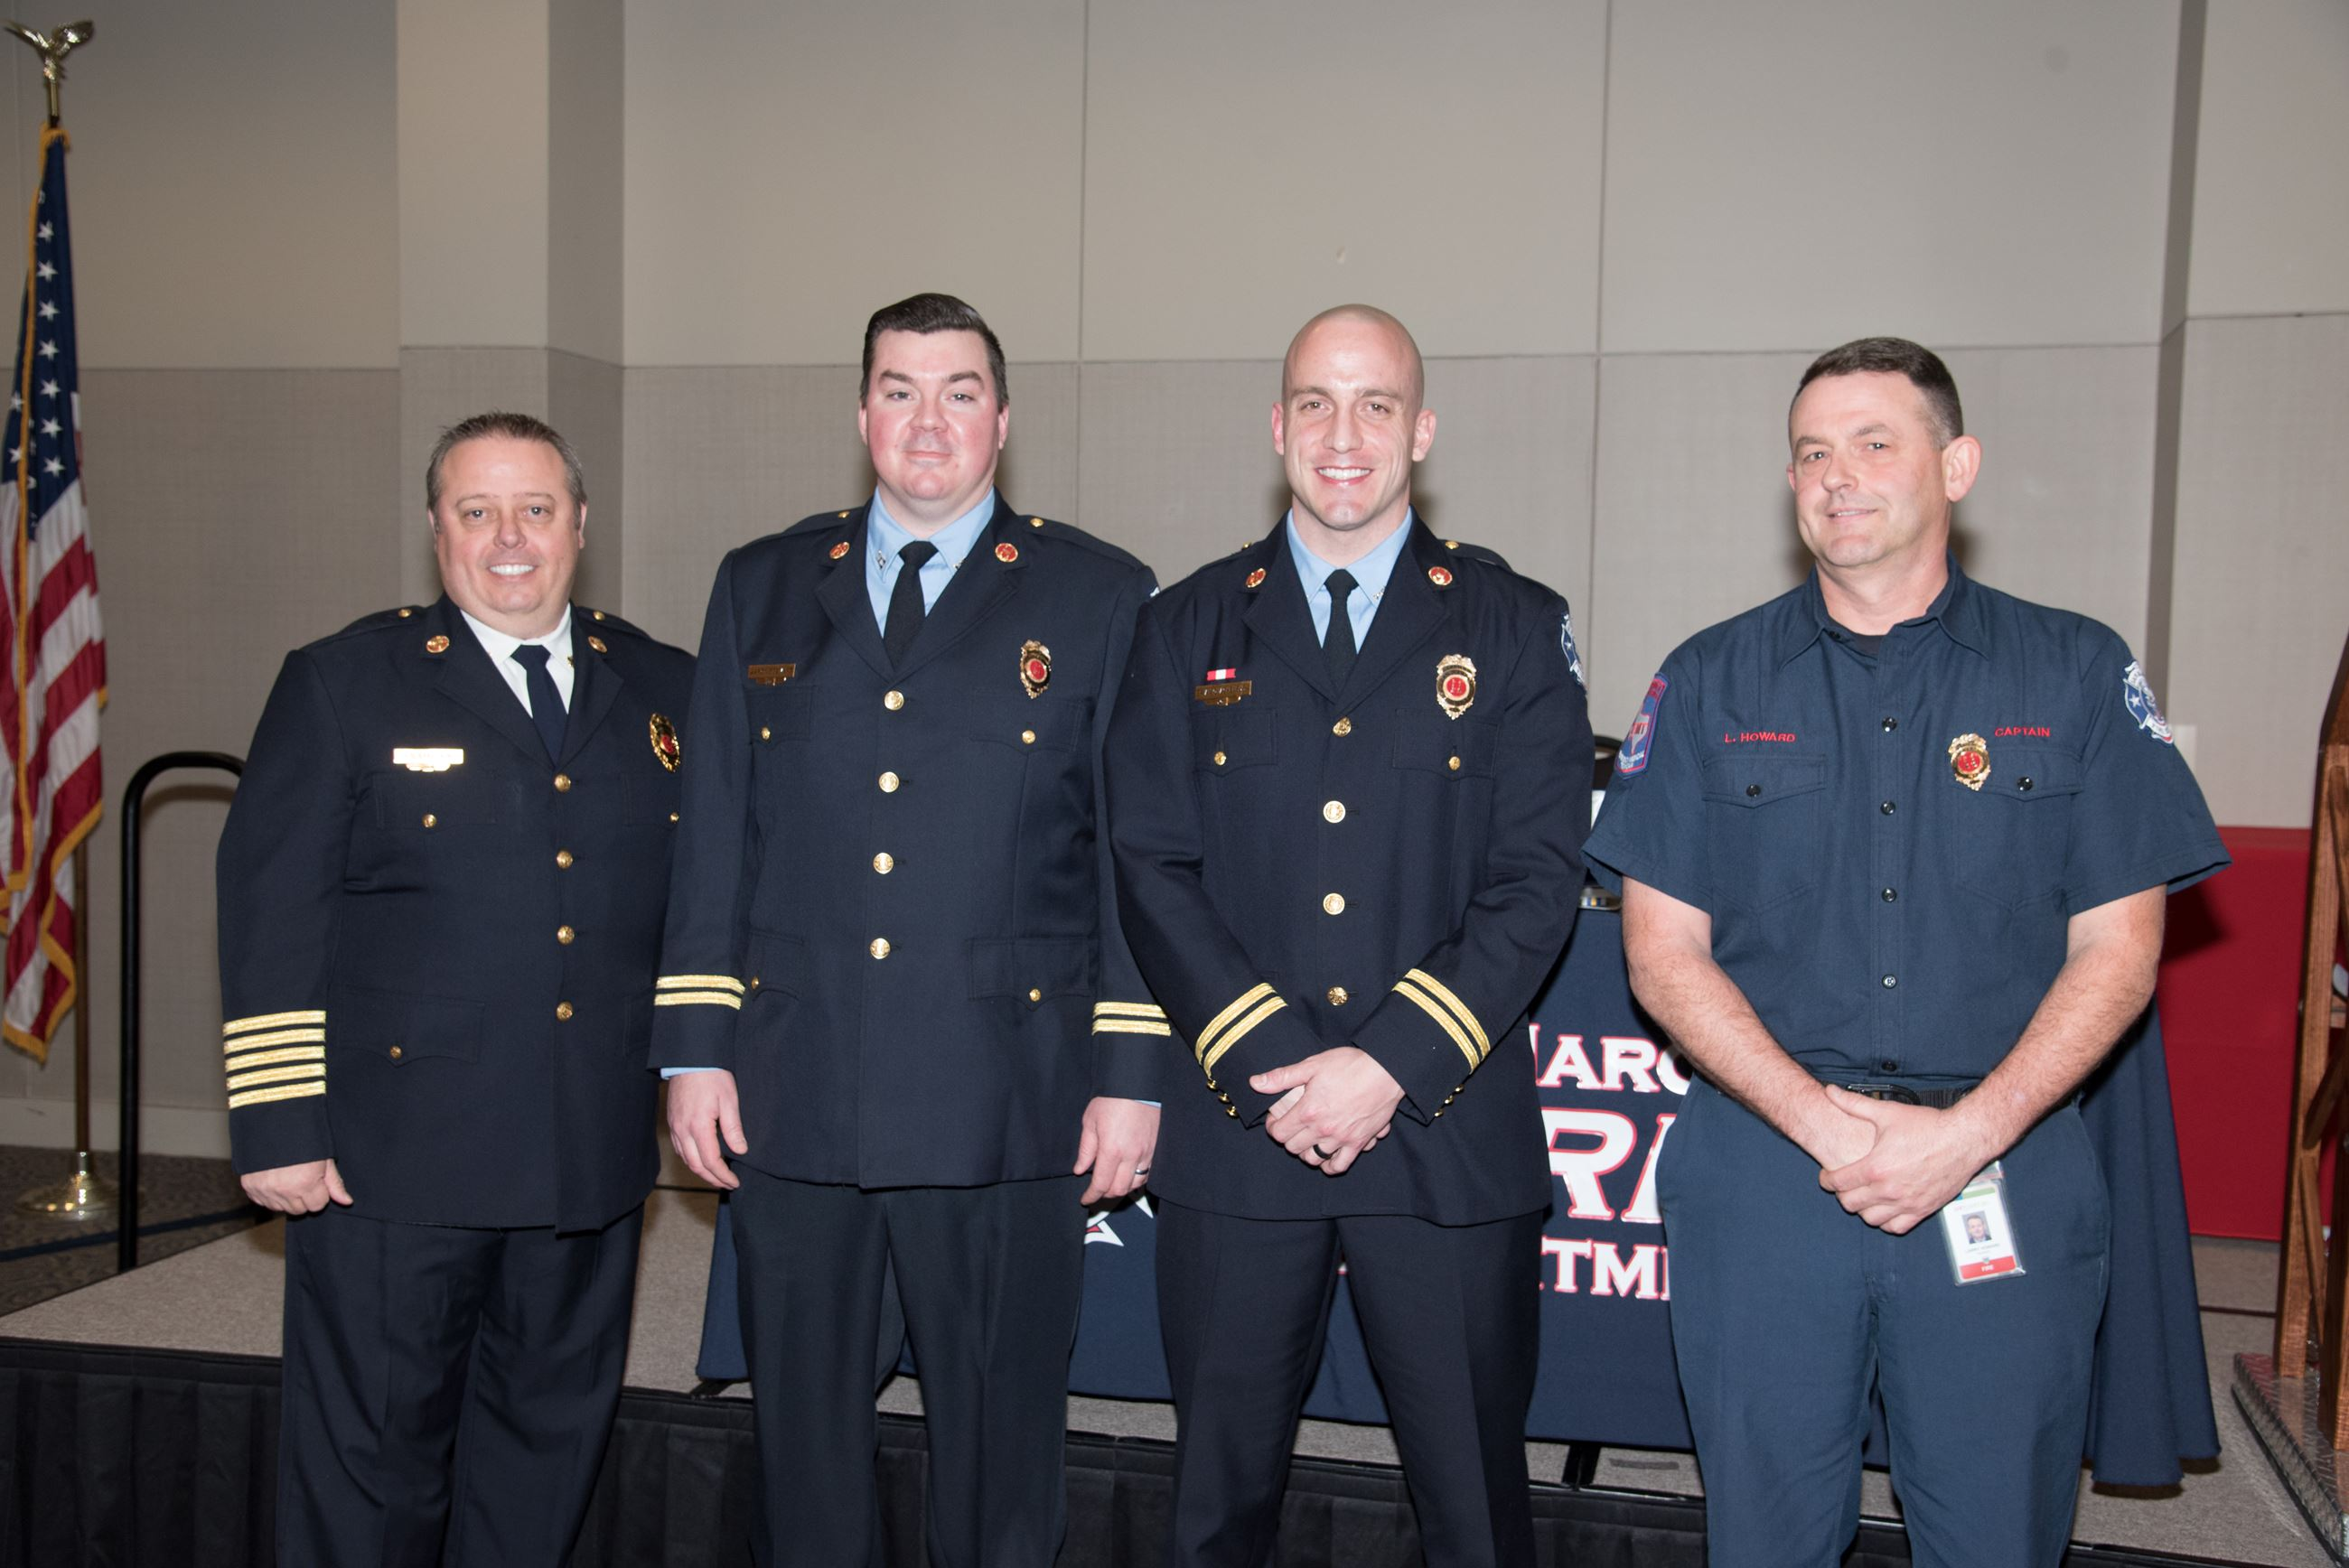 Promotional Pinning for Captains Aaron Stewart, Brian Quackenbush, and Larry Howard